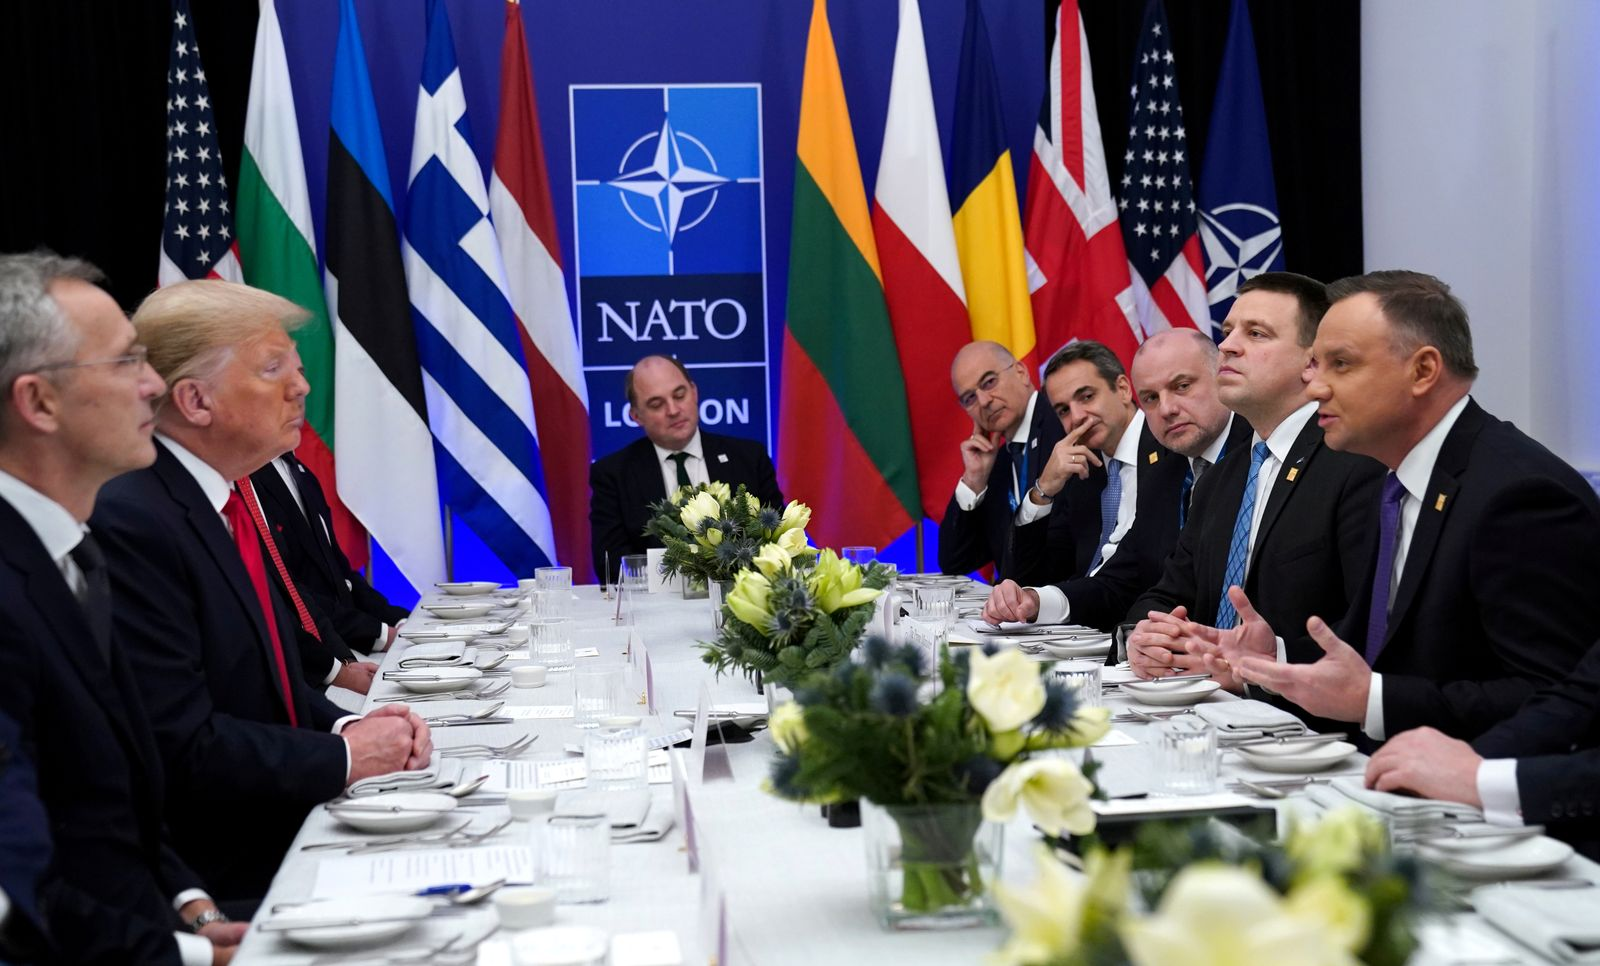 FILE PHOTO: NATO Alliance summit in Watford